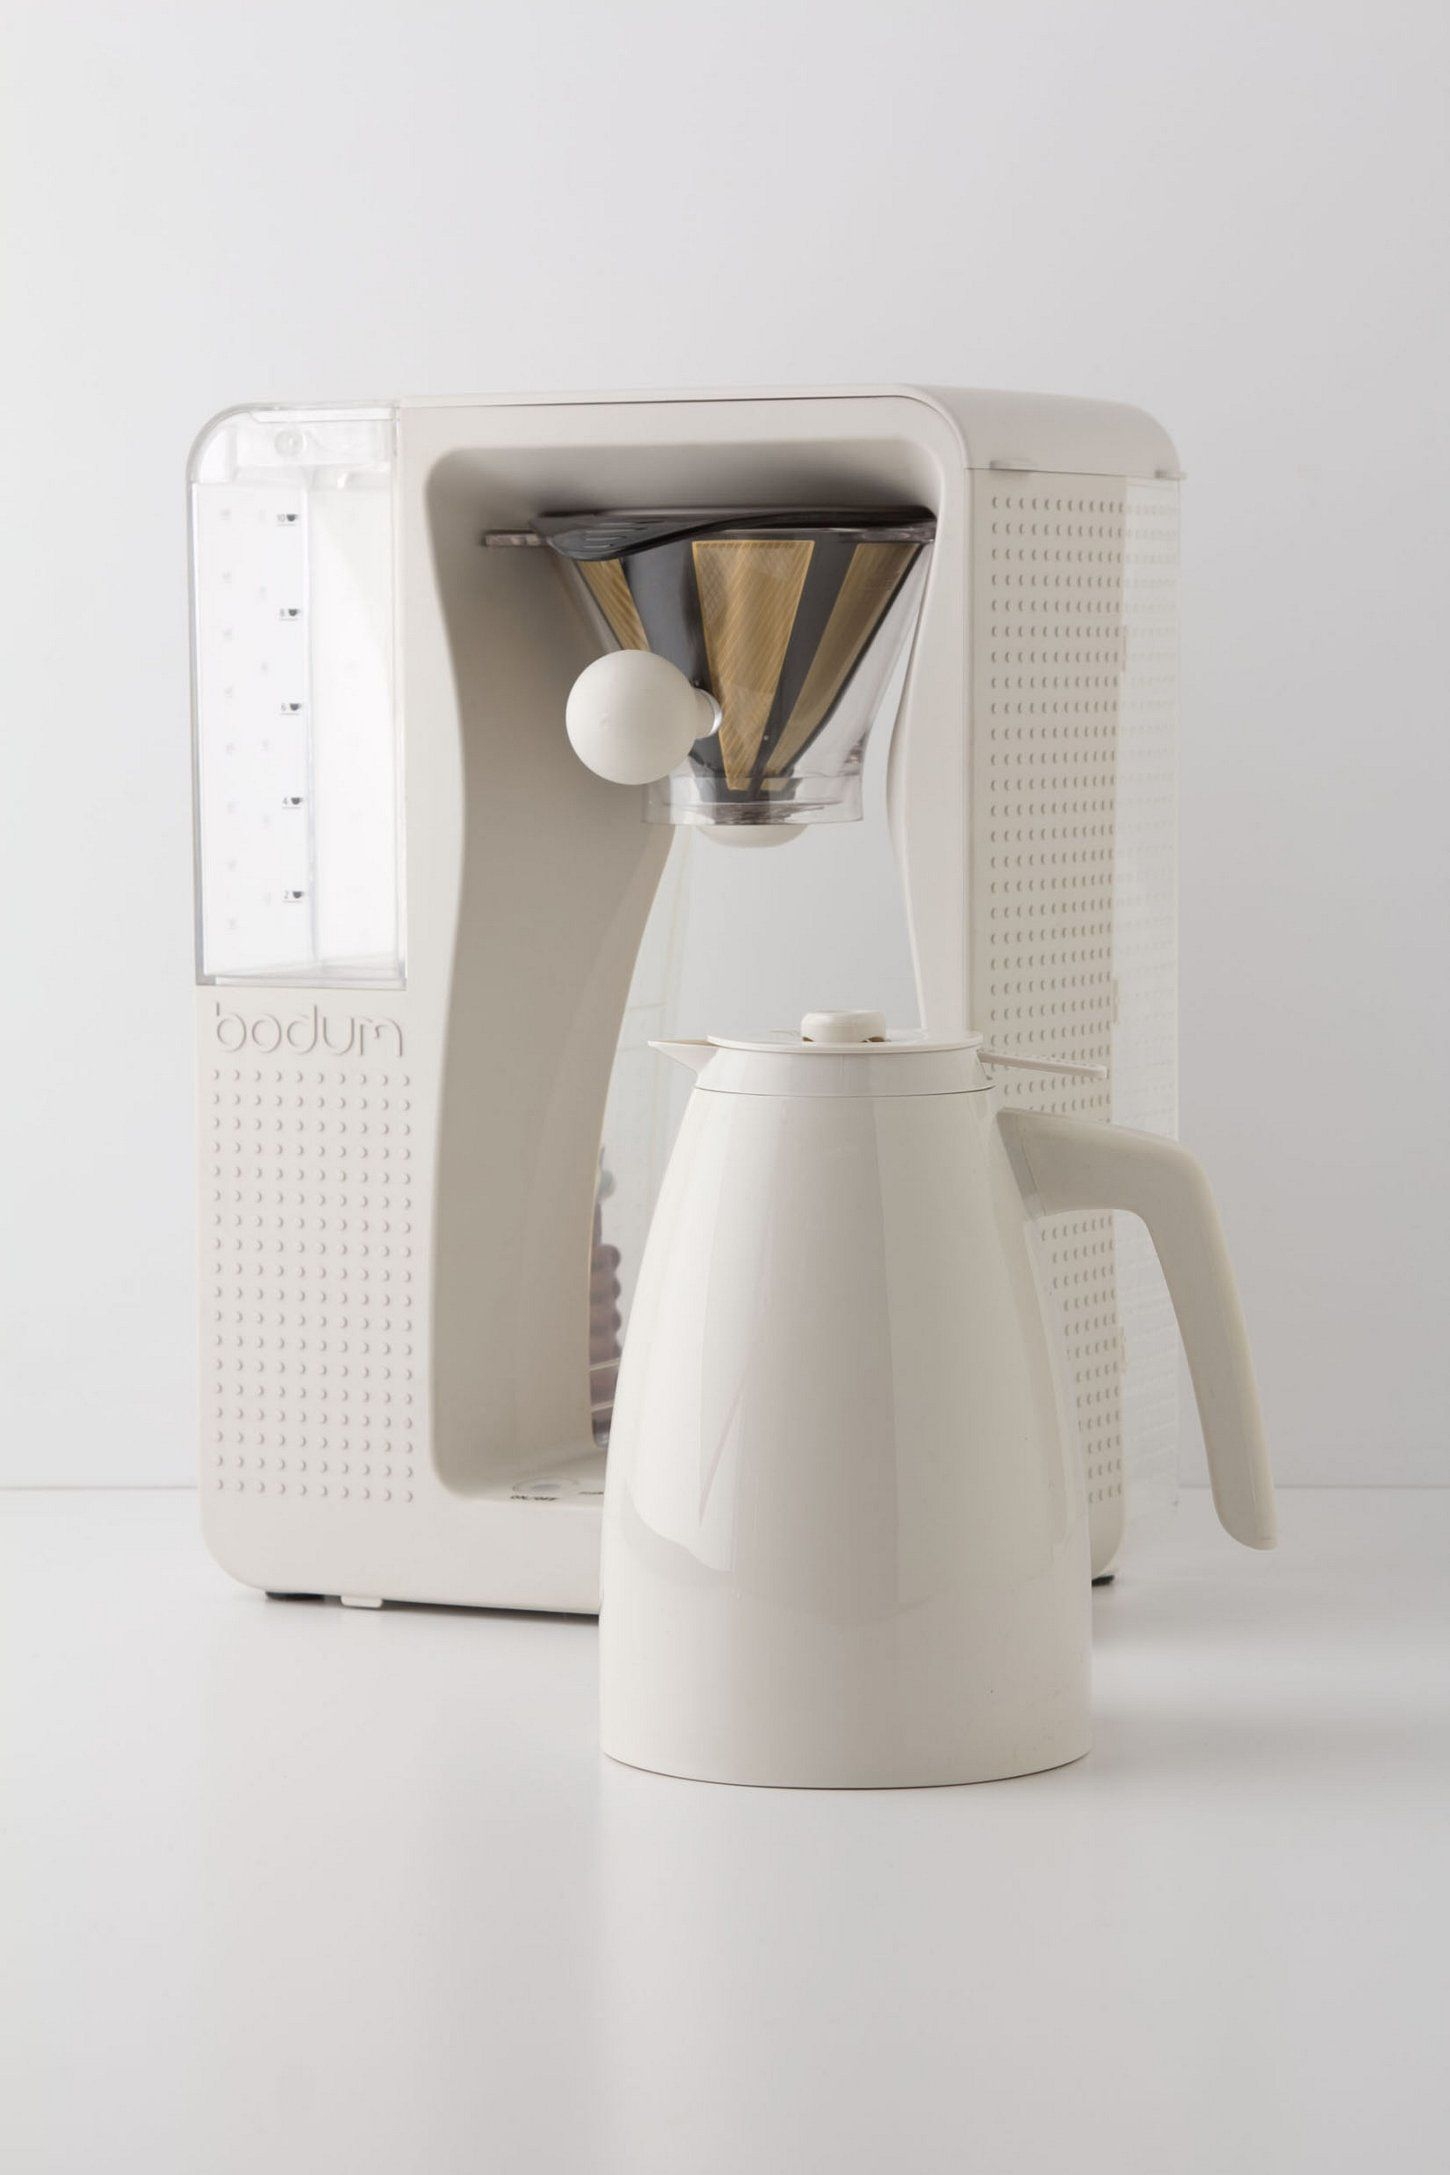 bistro brew coffee maker products i love pinterest genuss und w nsche. Black Bedroom Furniture Sets. Home Design Ideas